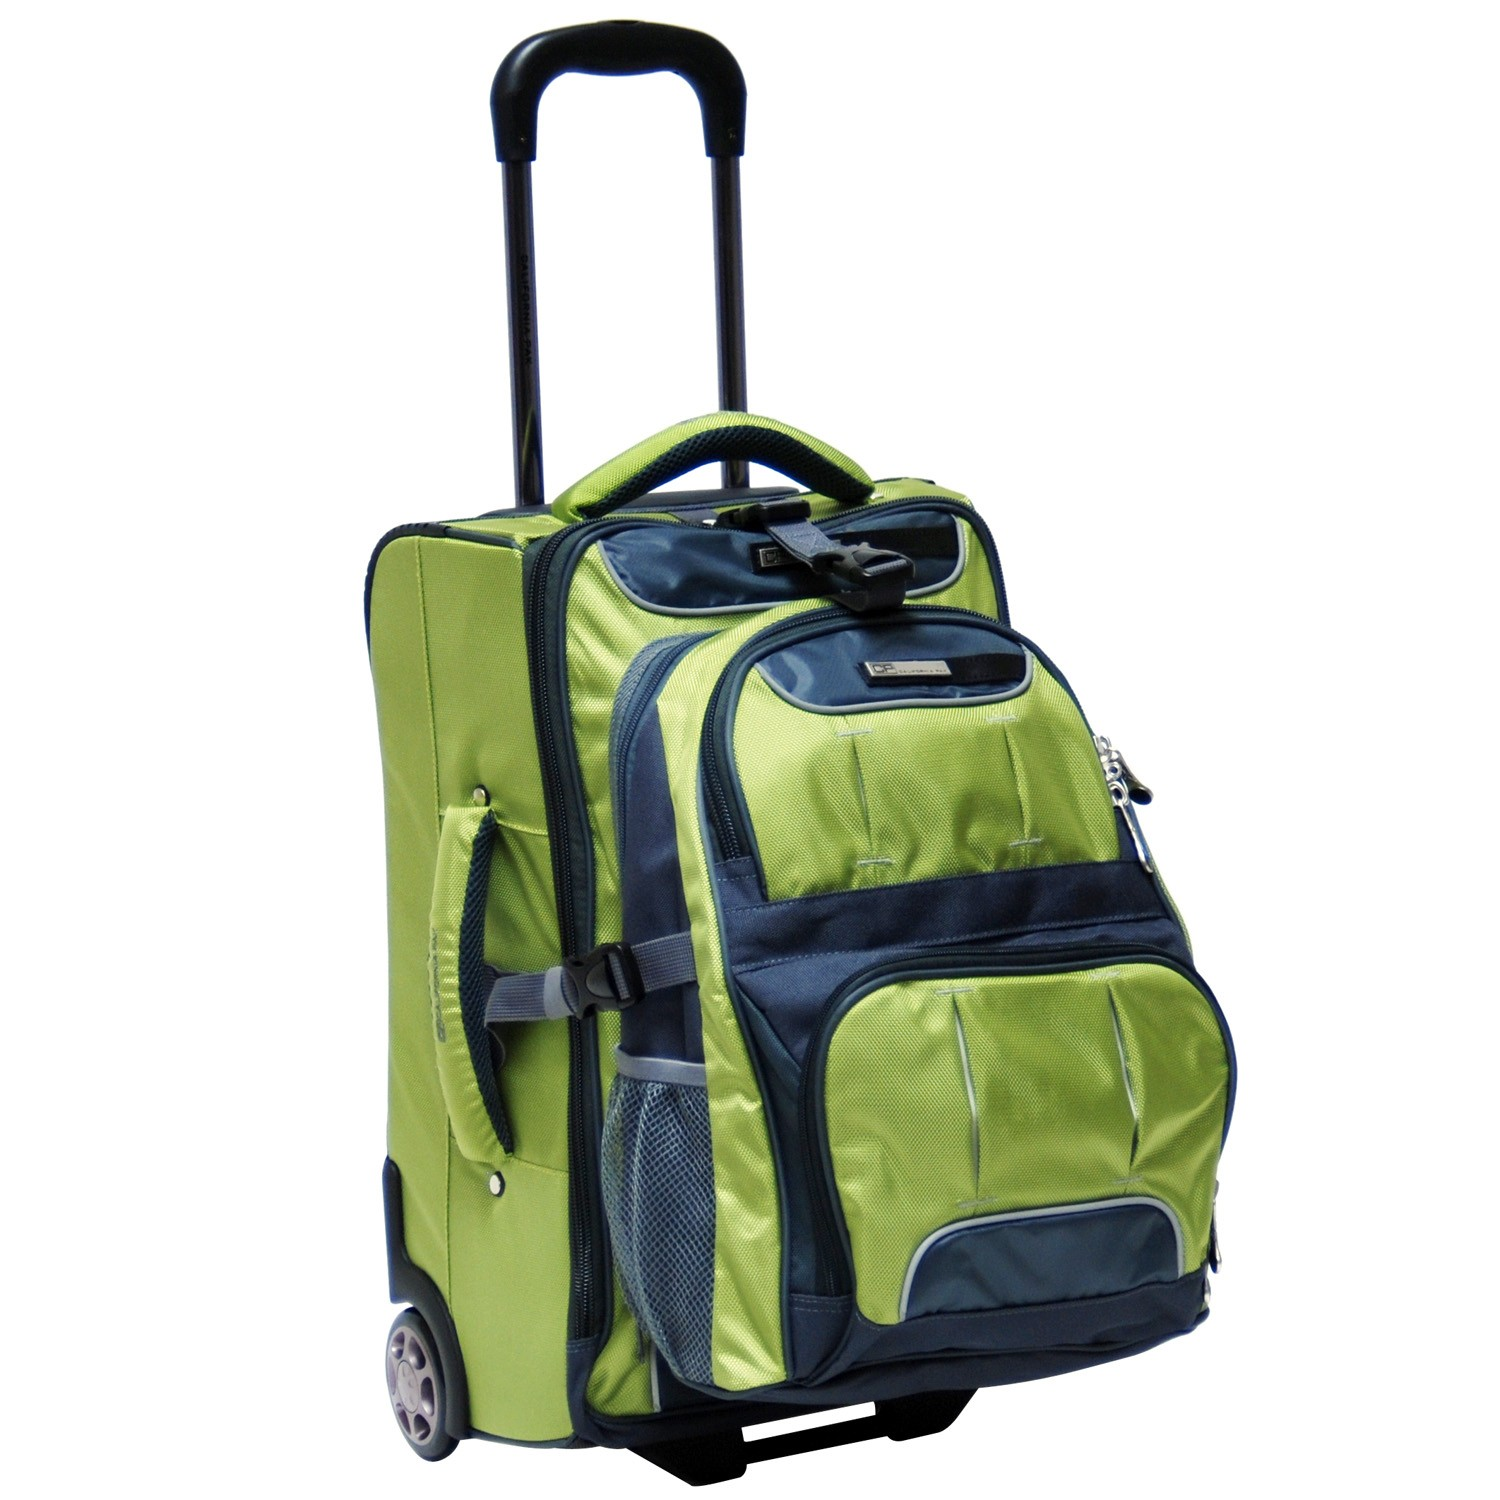 Calpak Arp401 Fusion 20 Quot Carry On Luggage With 16